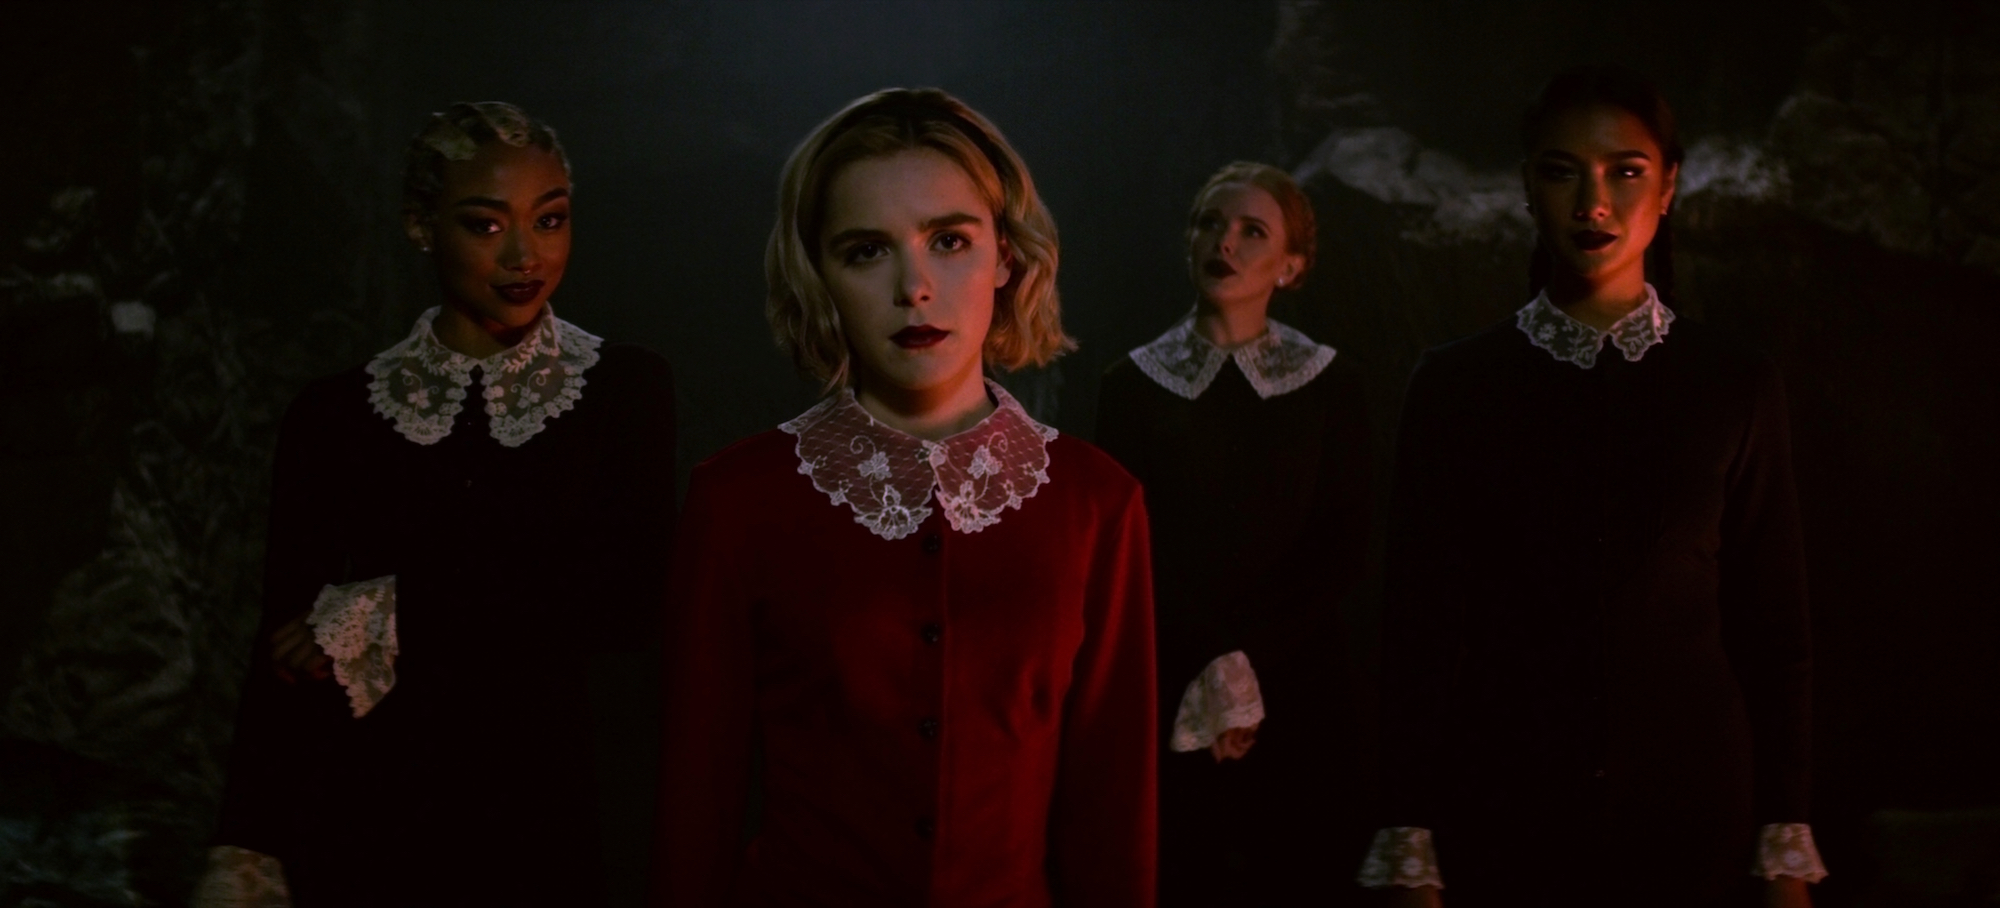 Tati Gabrielle, Kiernan Shipka, Abigail Cowen, and Adeline Rudolph in 'CHILLING ADVENTURES OF SABRINA,' Season 1.